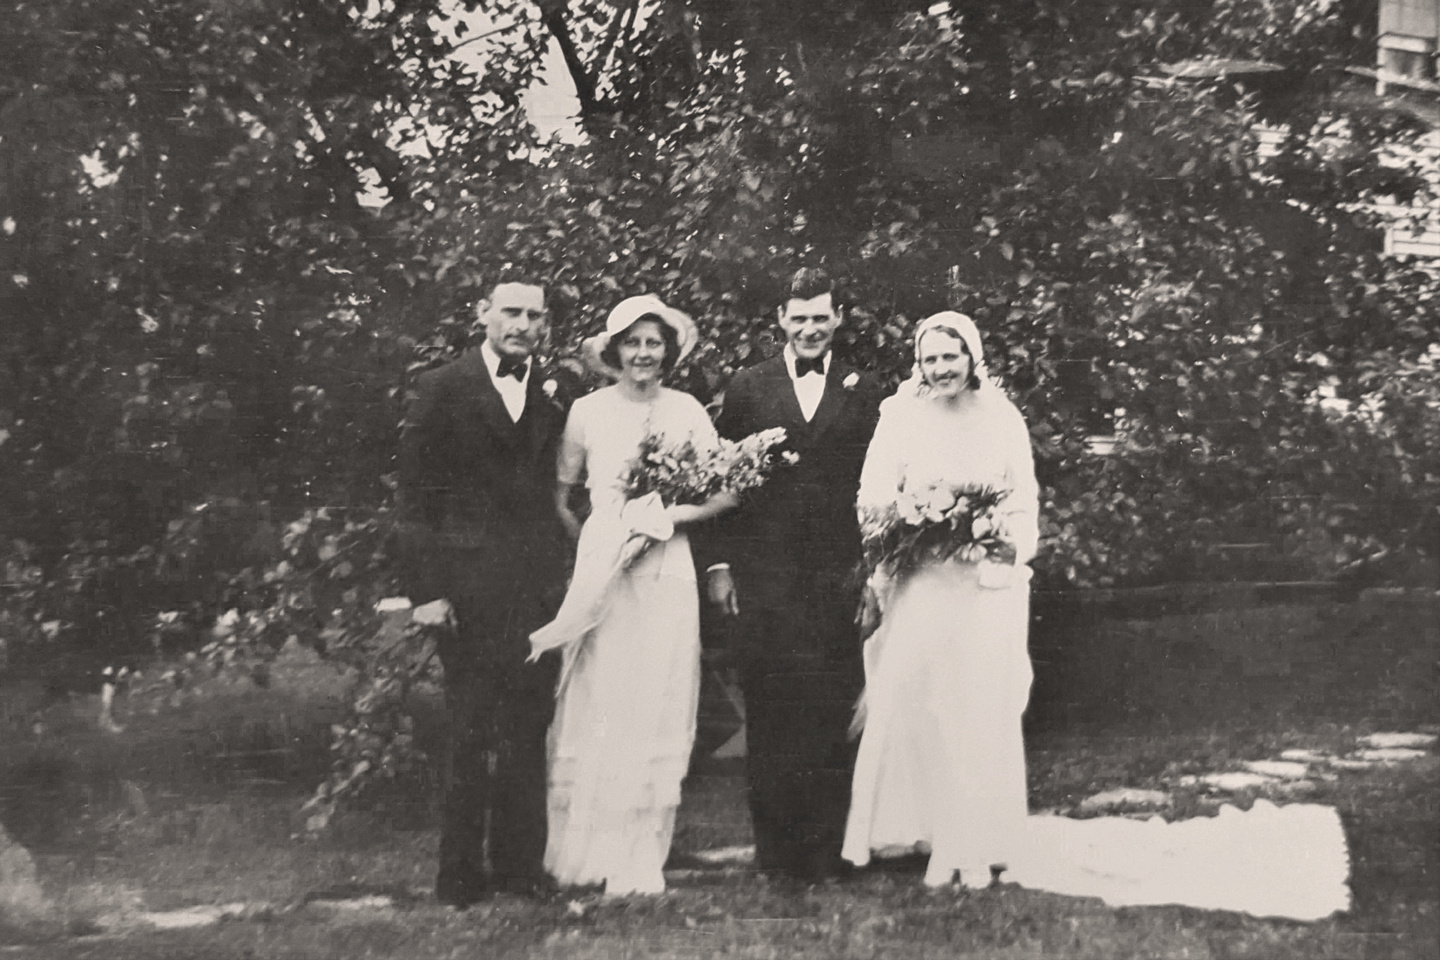 MB Boutiques: The Selker Collection &emdash; 1933 - Wedding of Frederick William Selker & Eleanor E. Herman